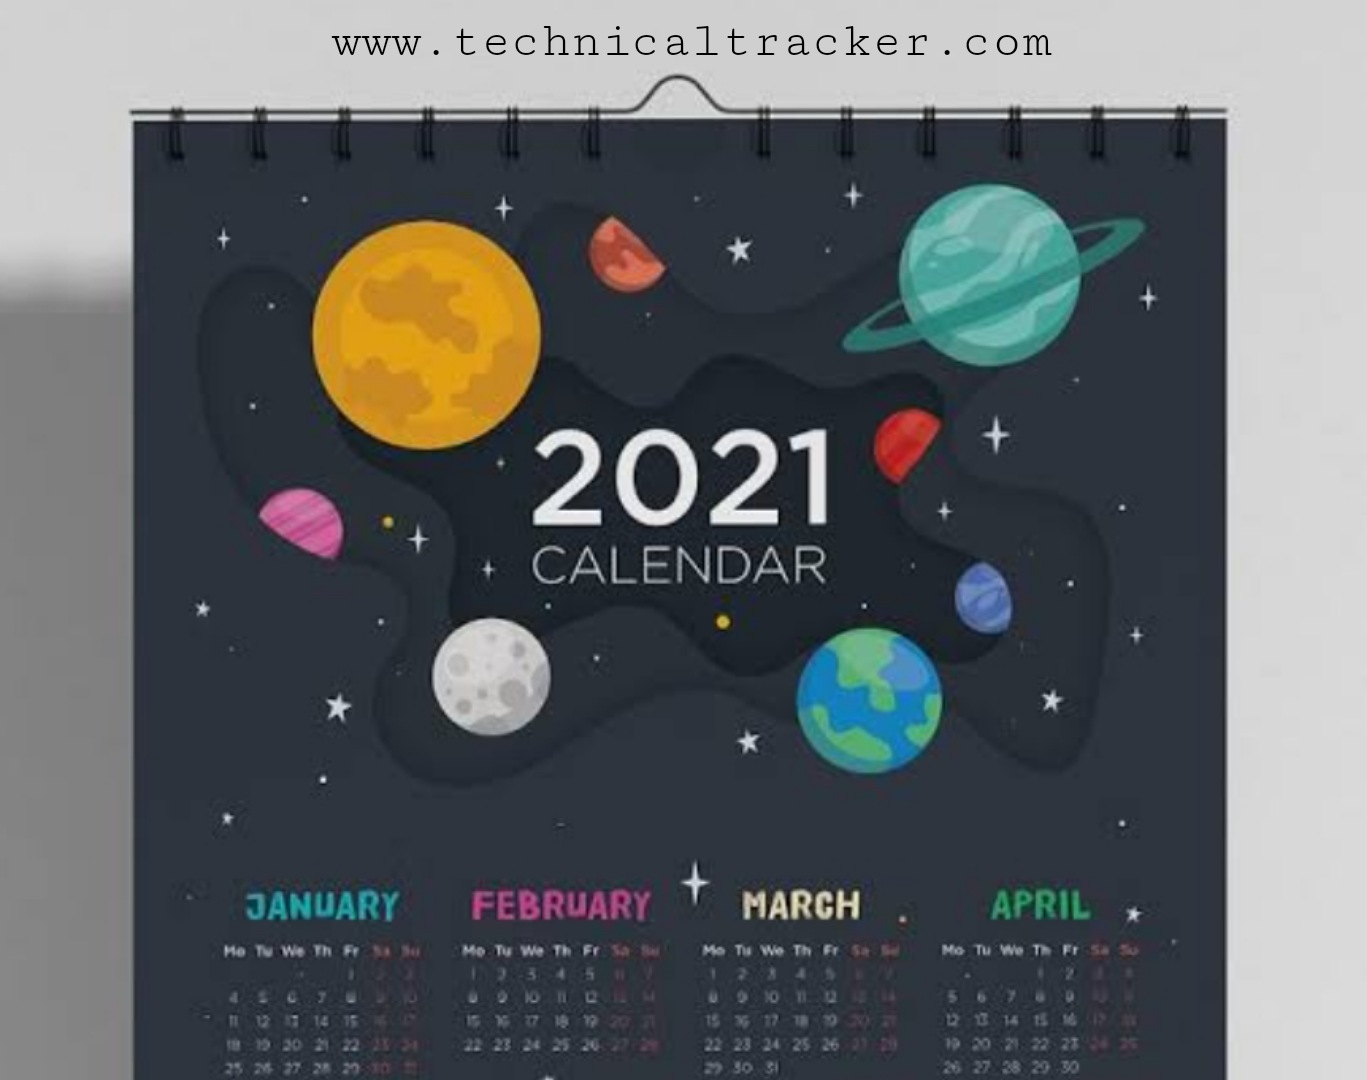 2021 Space Calendar : SpaceX Starship tests, NASA's missions, China's space station and many more